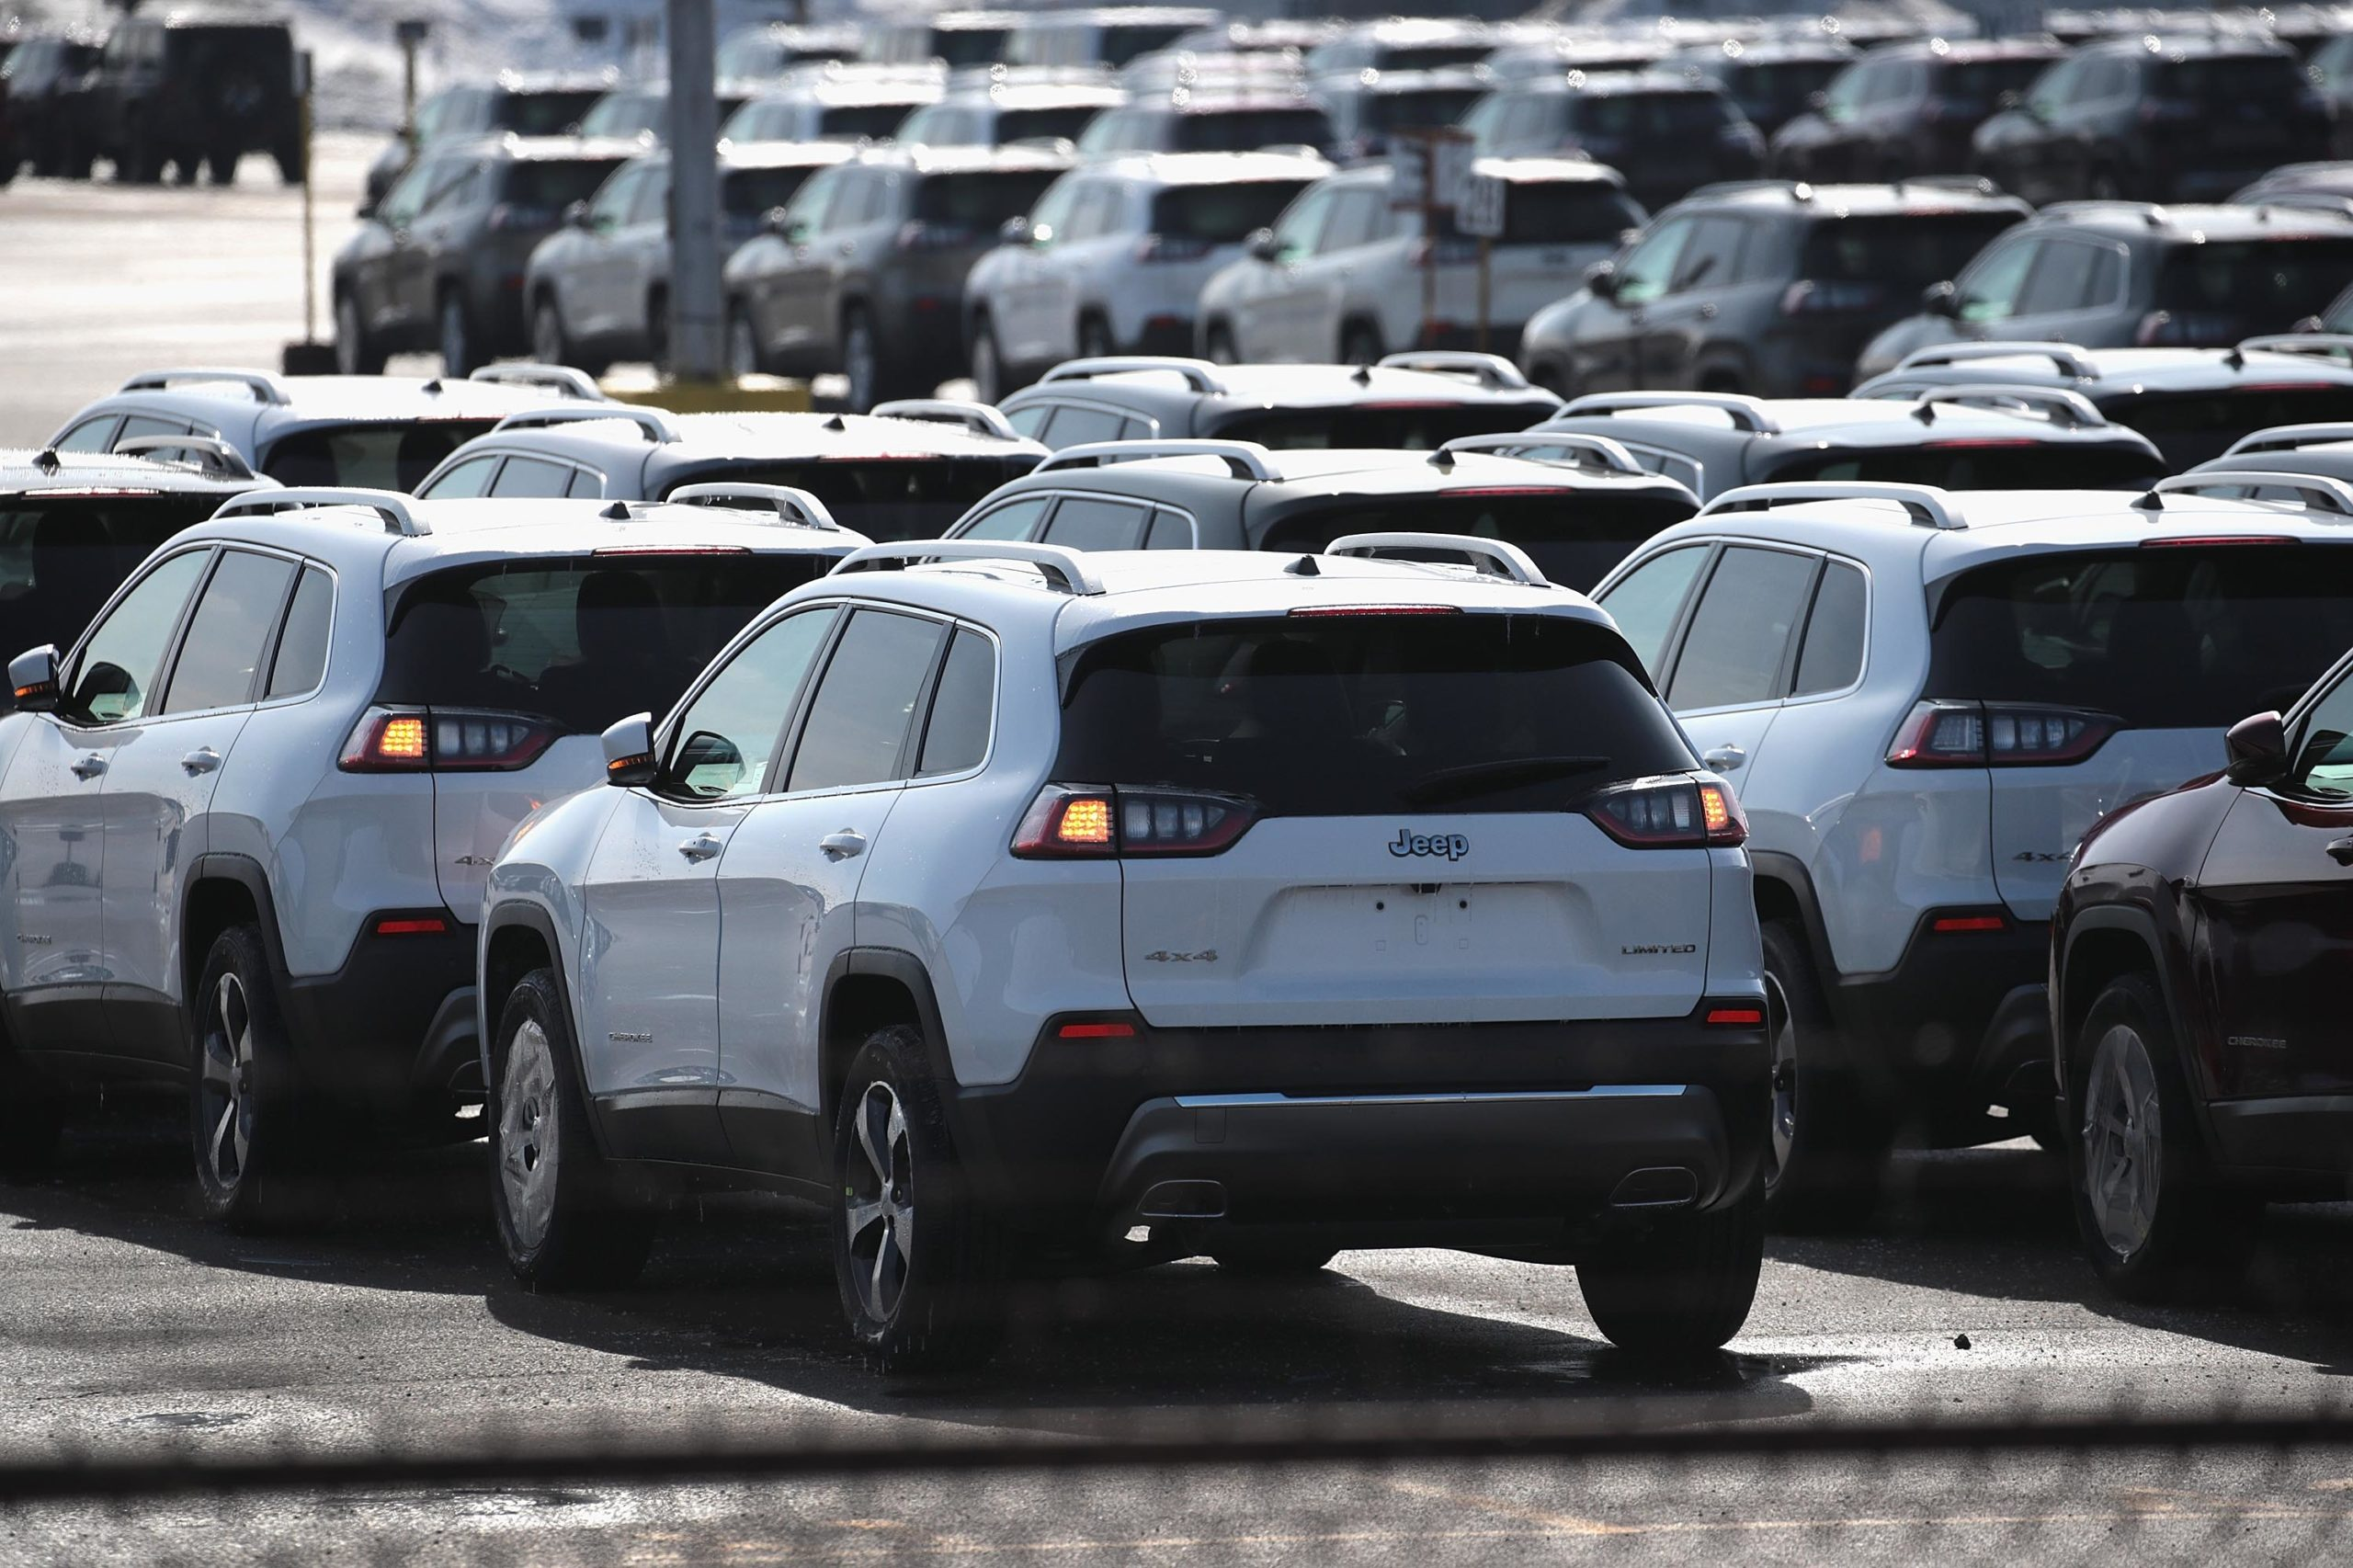 BELVIDERE, ILLINOIS - FEBRUARY 27: Jeep Cherokees sit on a lot at Fiat Chryslers's Belvidere Assembly Plant on February 27, 2019 in Belvidere, Illinois. Fiat Chrysler, the third-largest automaker in the U.S., has said it would lay off more than 1,300 of the 5,300 workers at the facility because of slowing sales for the Jeep Cherokee which is only built at the Belvidere plant. (Photo by Scott Olson/Getty Images)